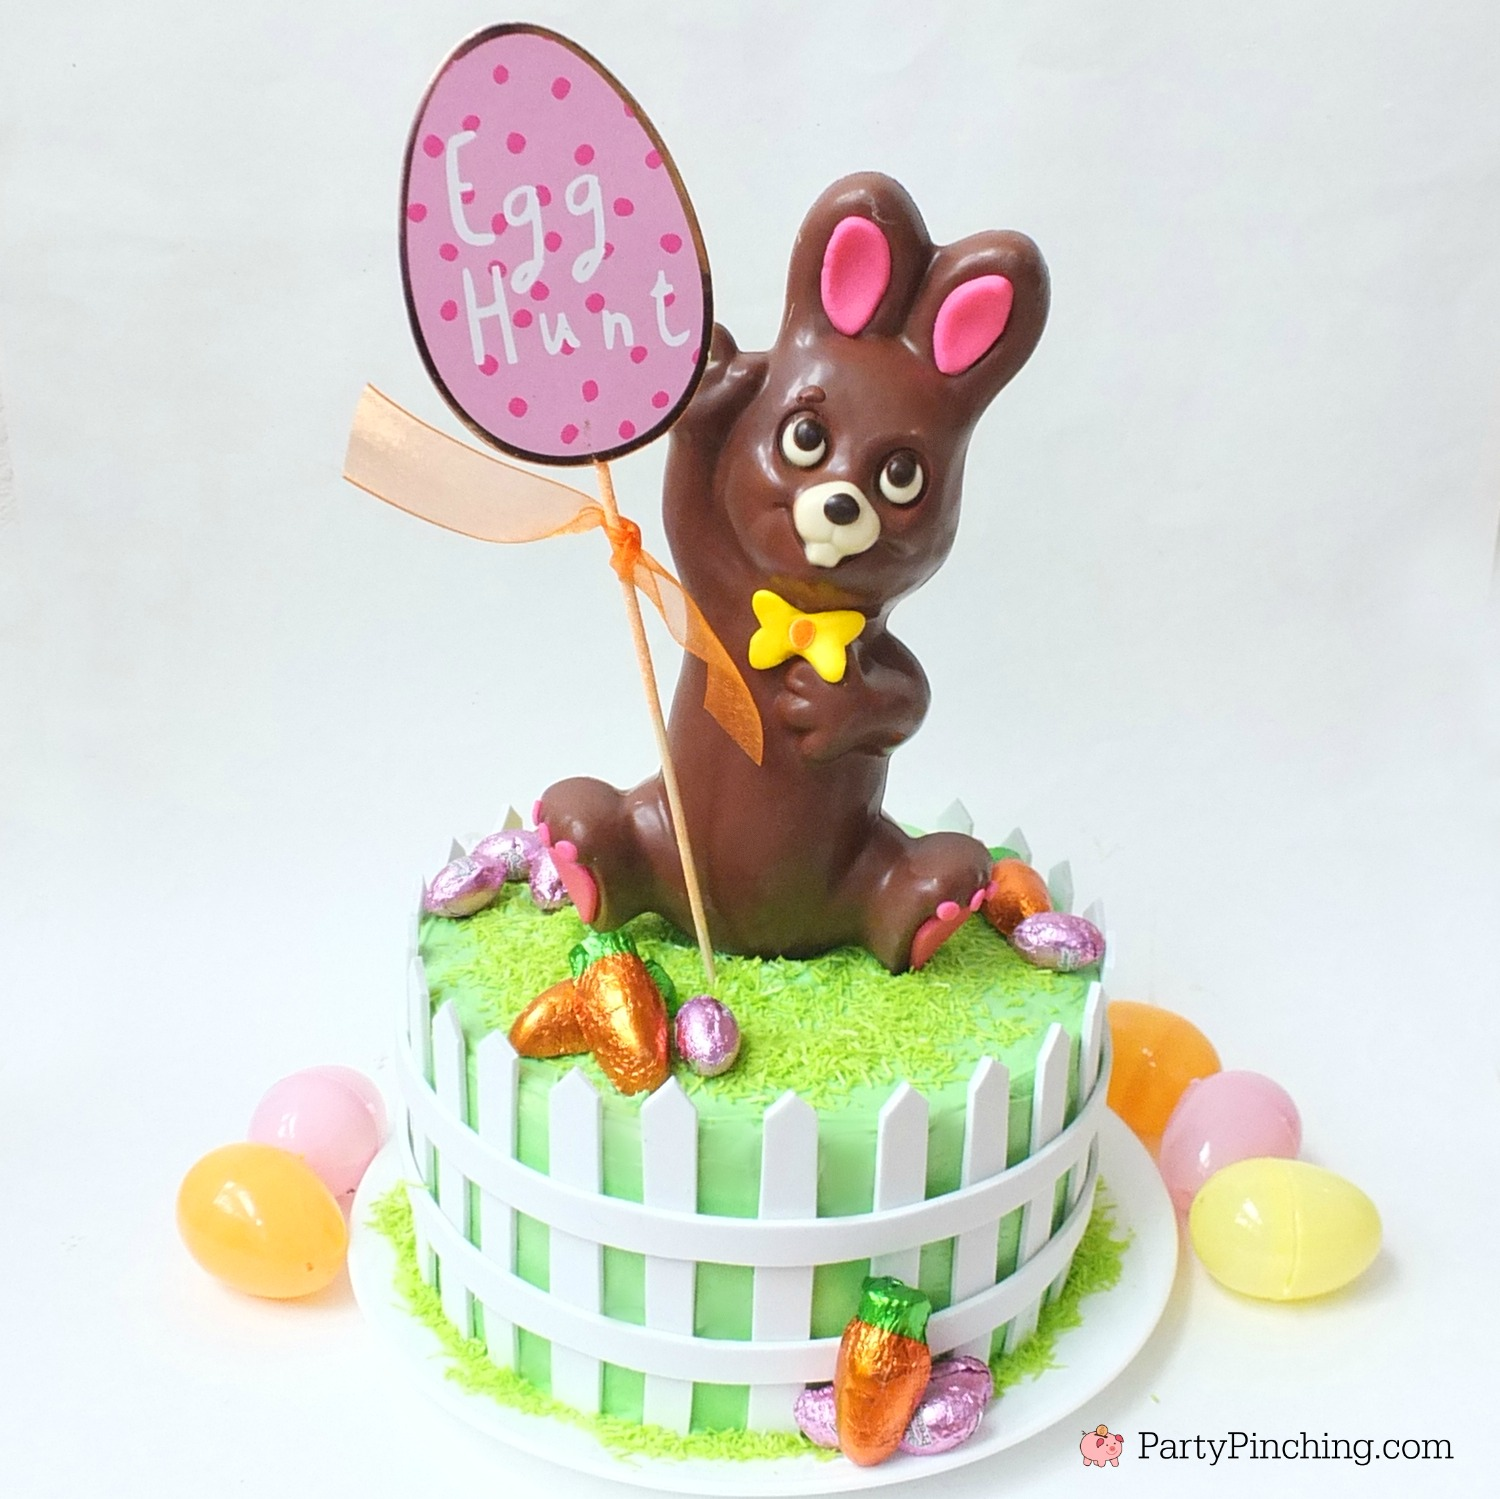 Easter bunny egg hunt cake, chocolate bunny cake, RM Palmer Hoppy Hideout bunny cake, cute and easy Easter dessert cake recipe, fun food for Easter, kid friendly Easter brunch ideas